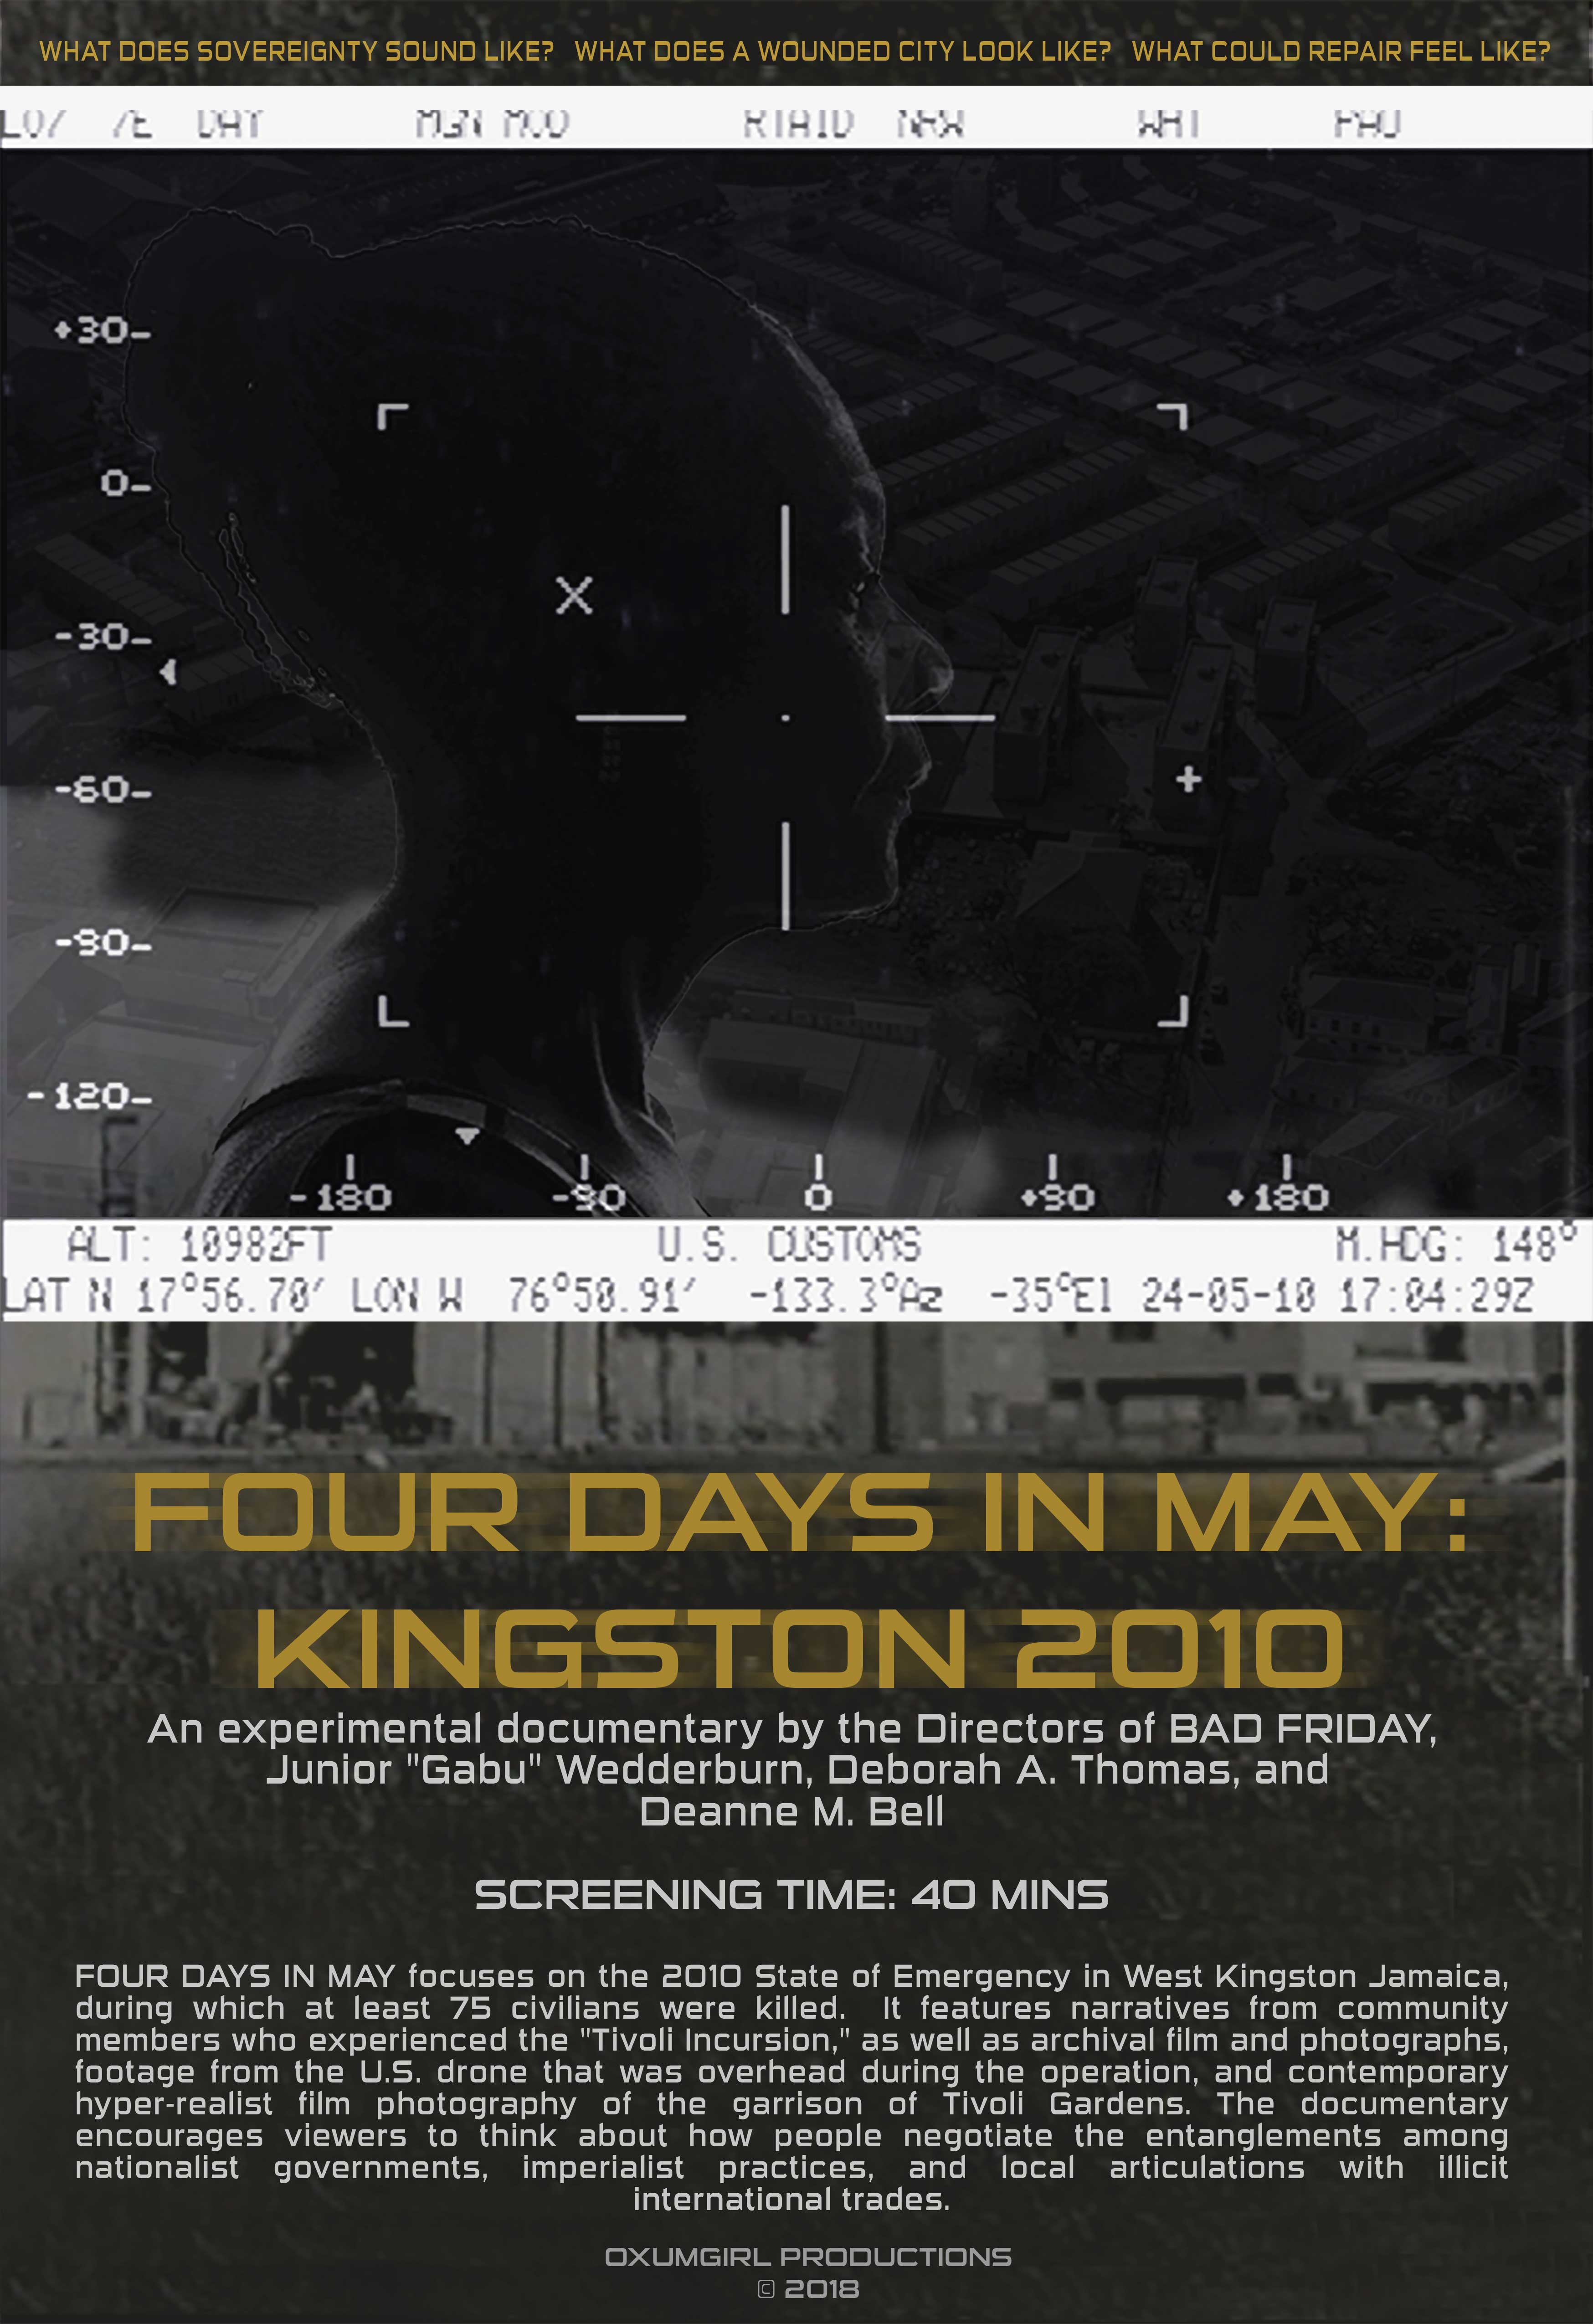 Four Days in May: Kingston 2010